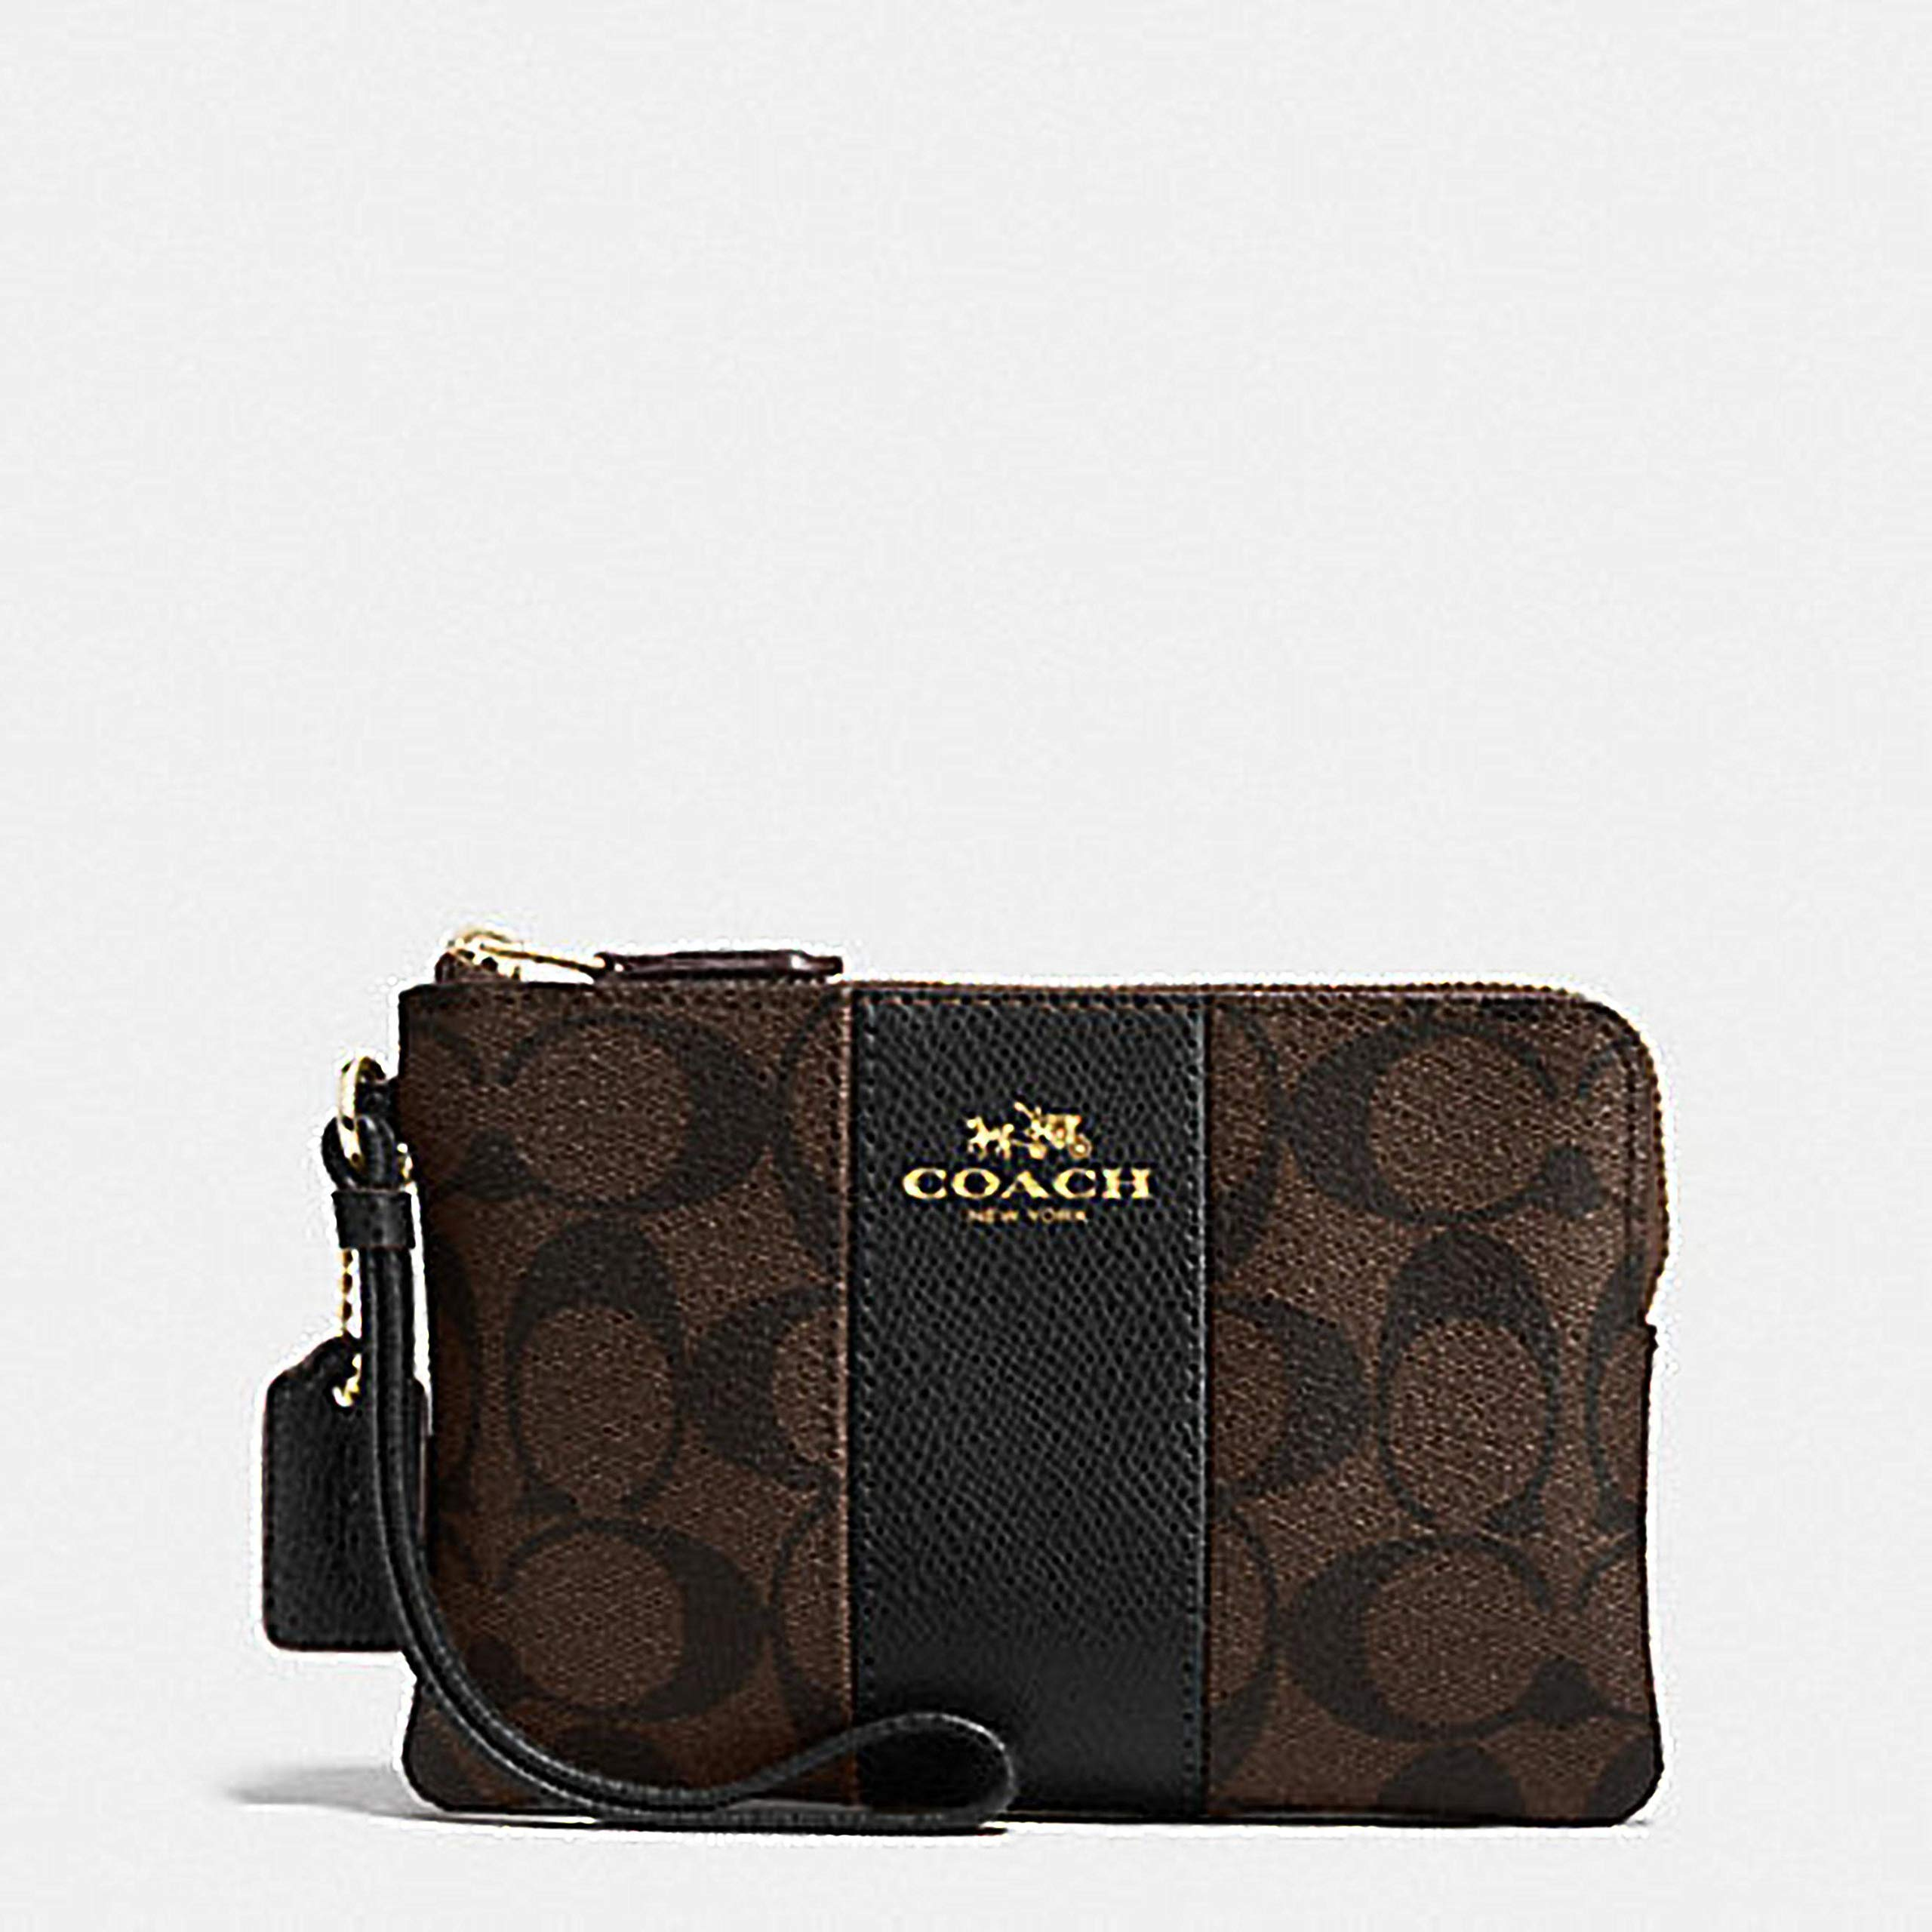 Coach F58035 Corner Zip Wristlet in Signature Coated Canvas Brown Black by Coach